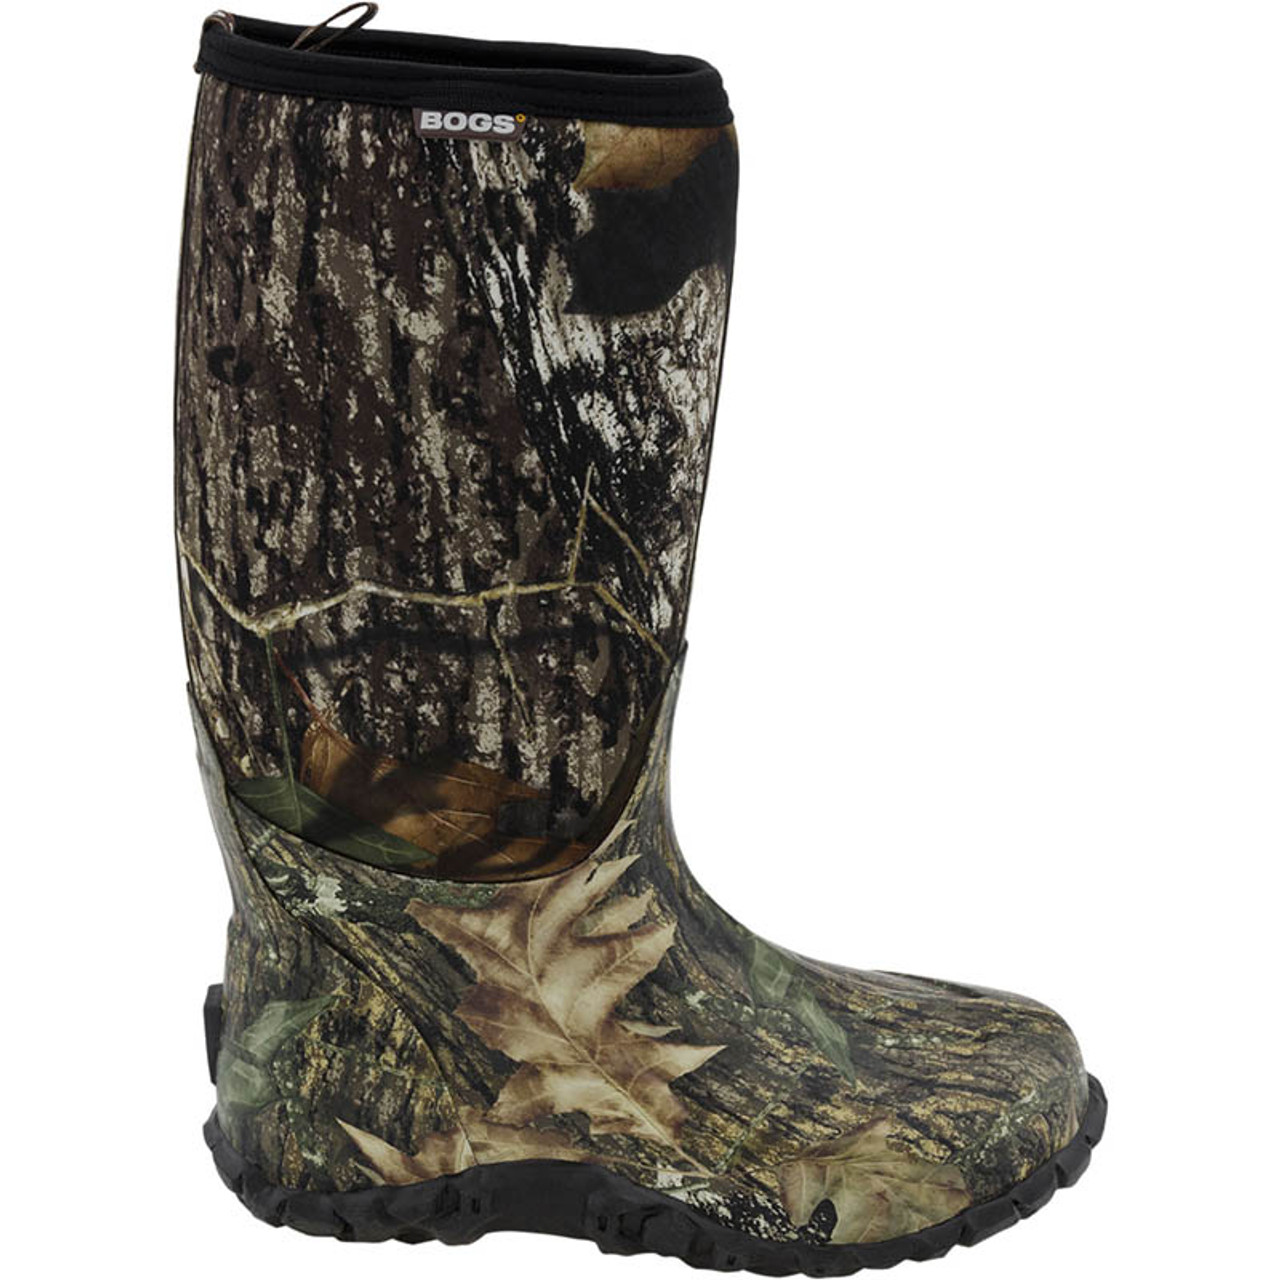 7cd96415594 BOGS 60542 Men's CLASSIC HIGH MOSSY OAK Insulated Camo Boots